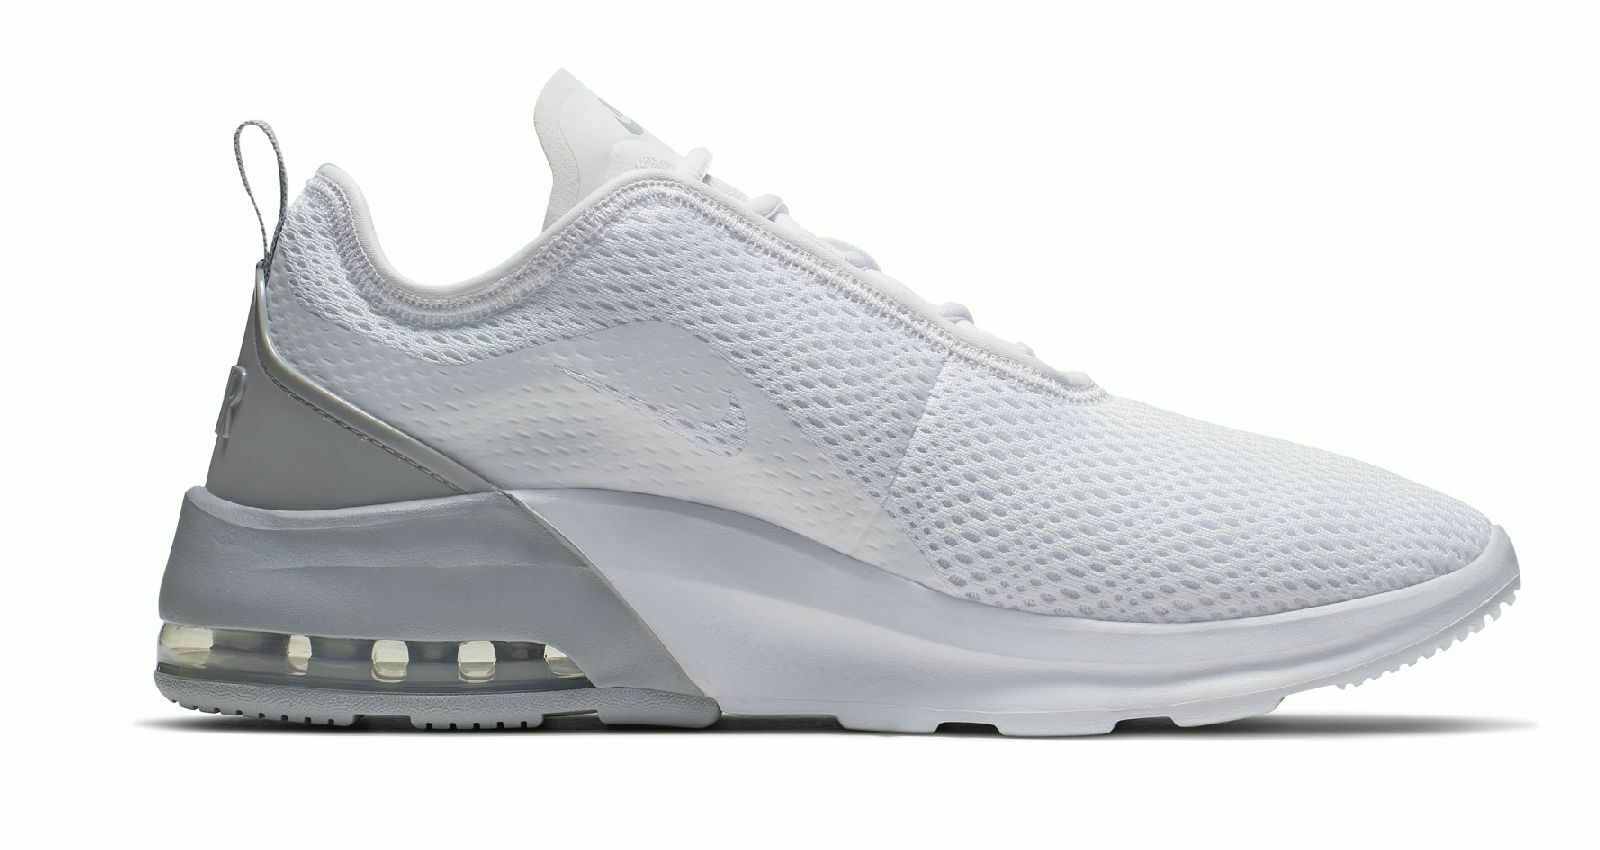 Nike NIKE MAX MOTION 2 weiss AIR Herren Sport Fitness